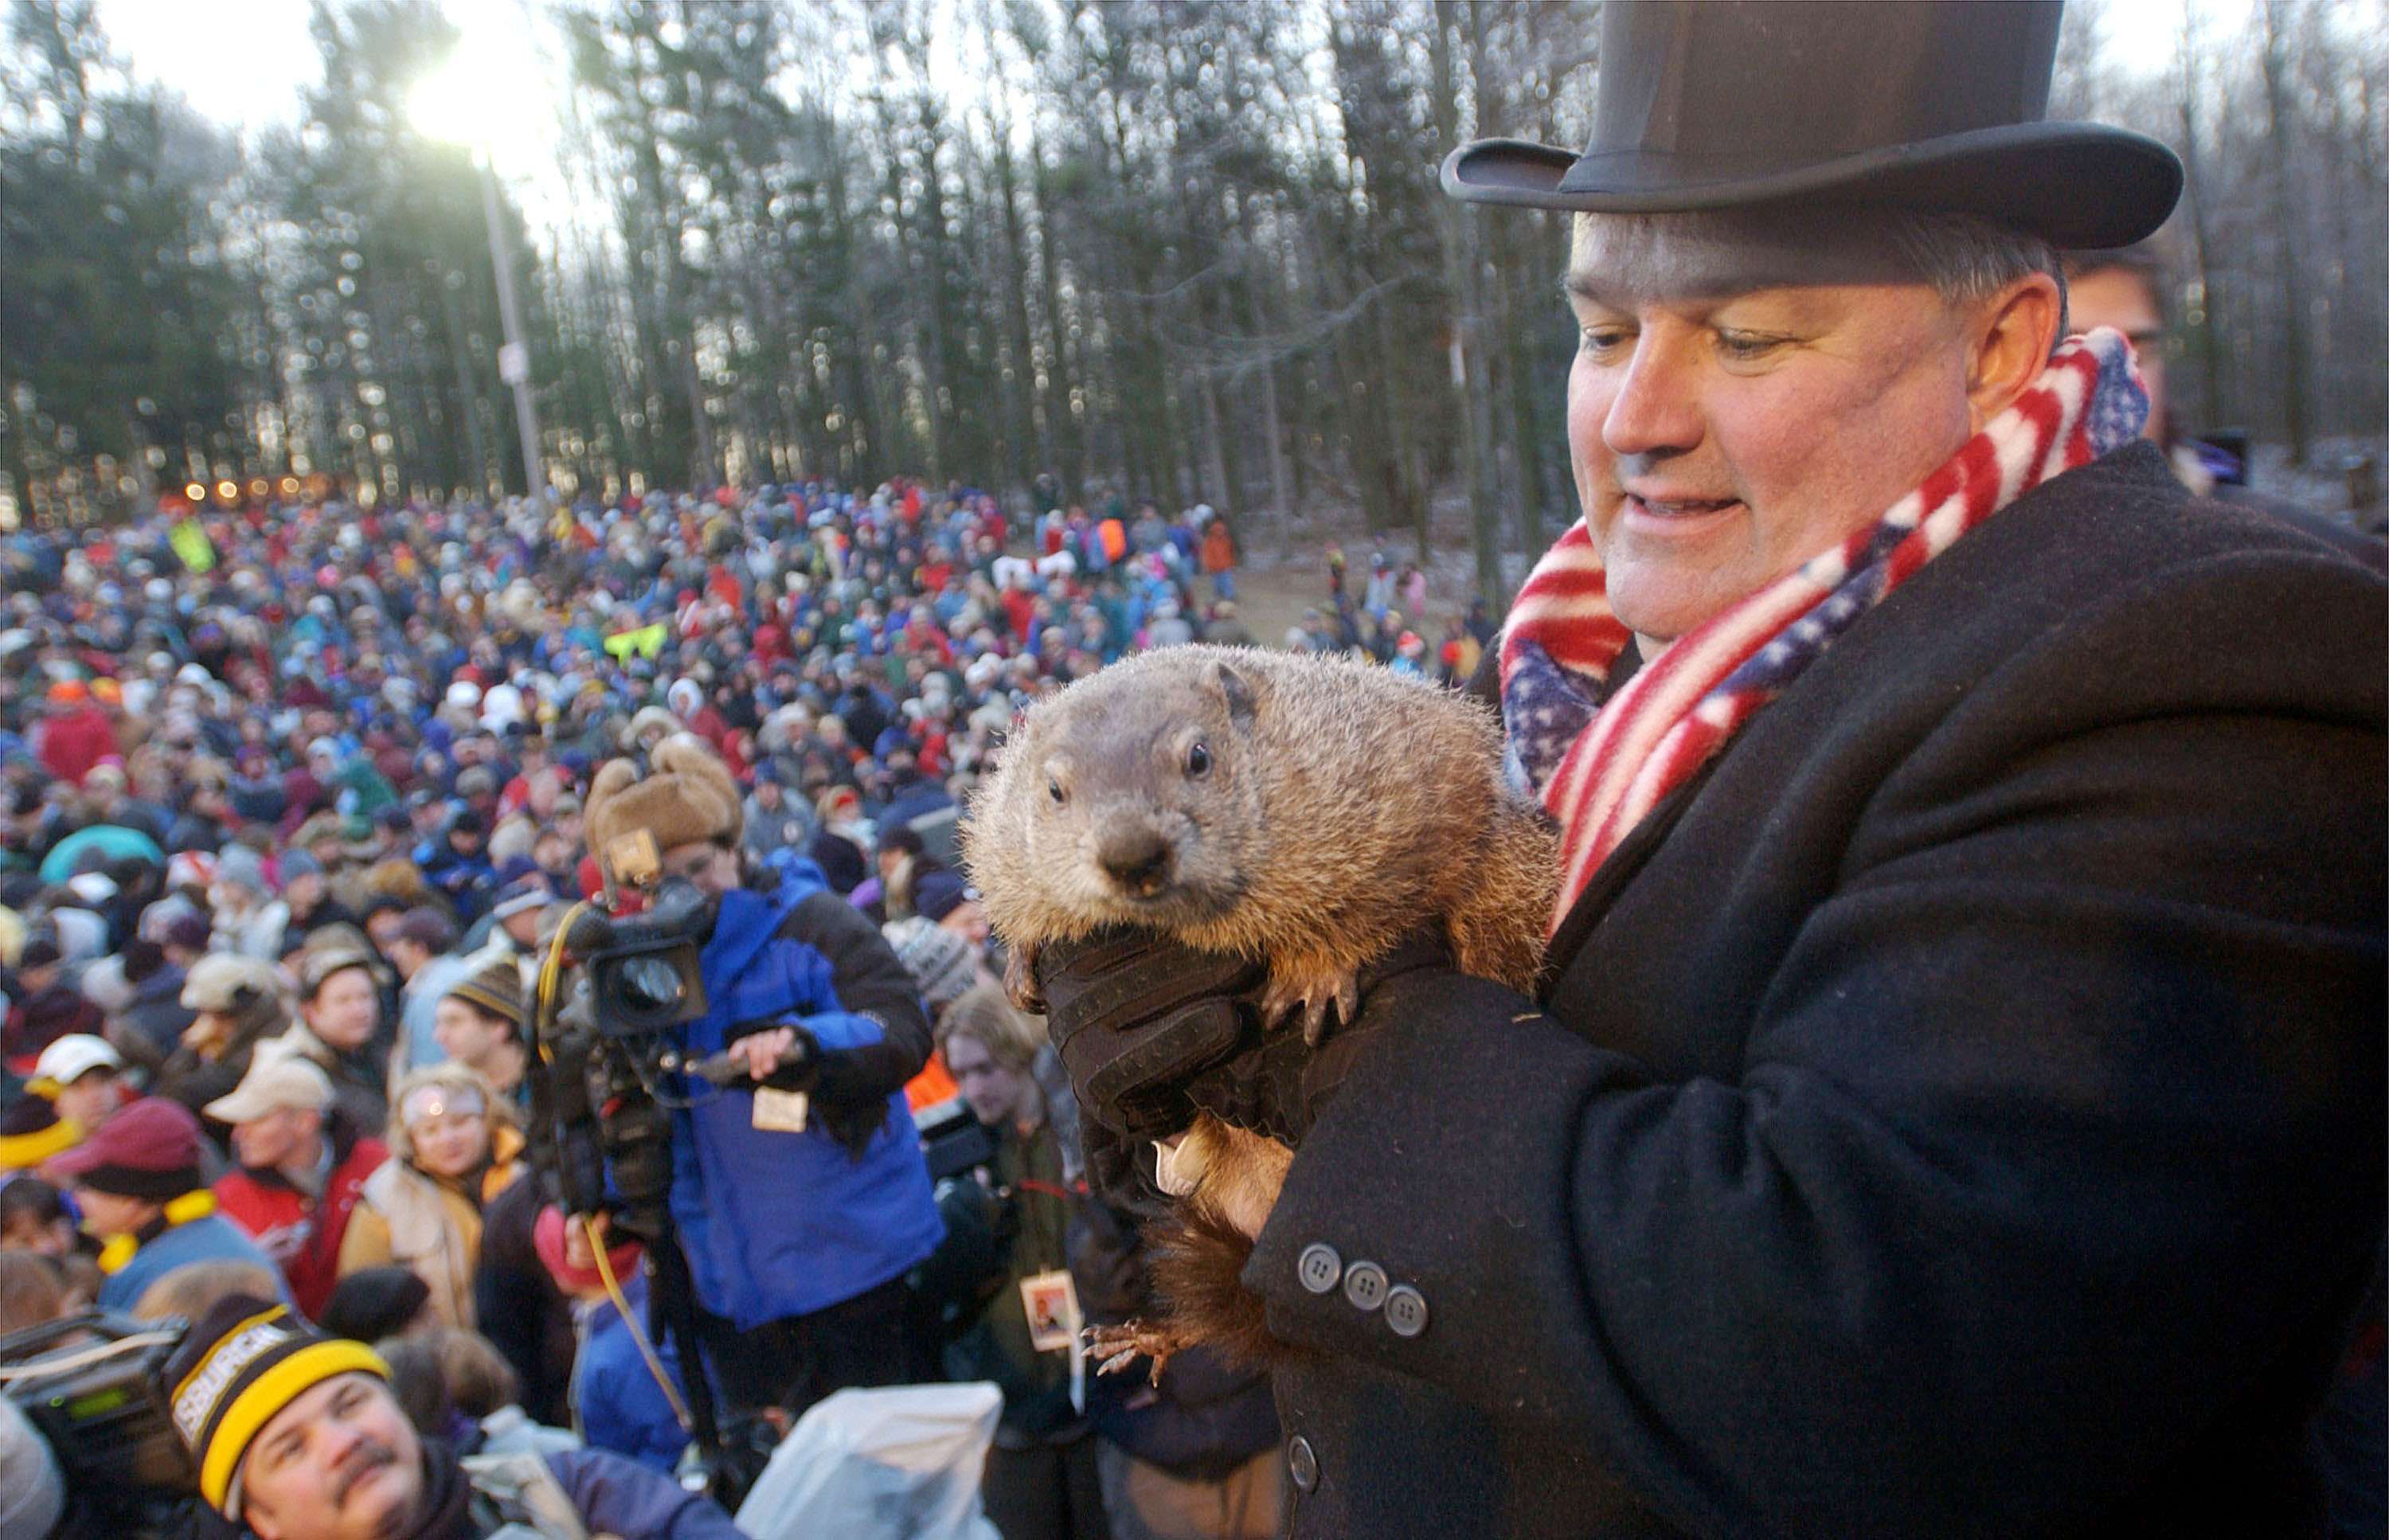 Groundhog Day 2018: Who is Punxsutawney Phil? Did he see his shadow?